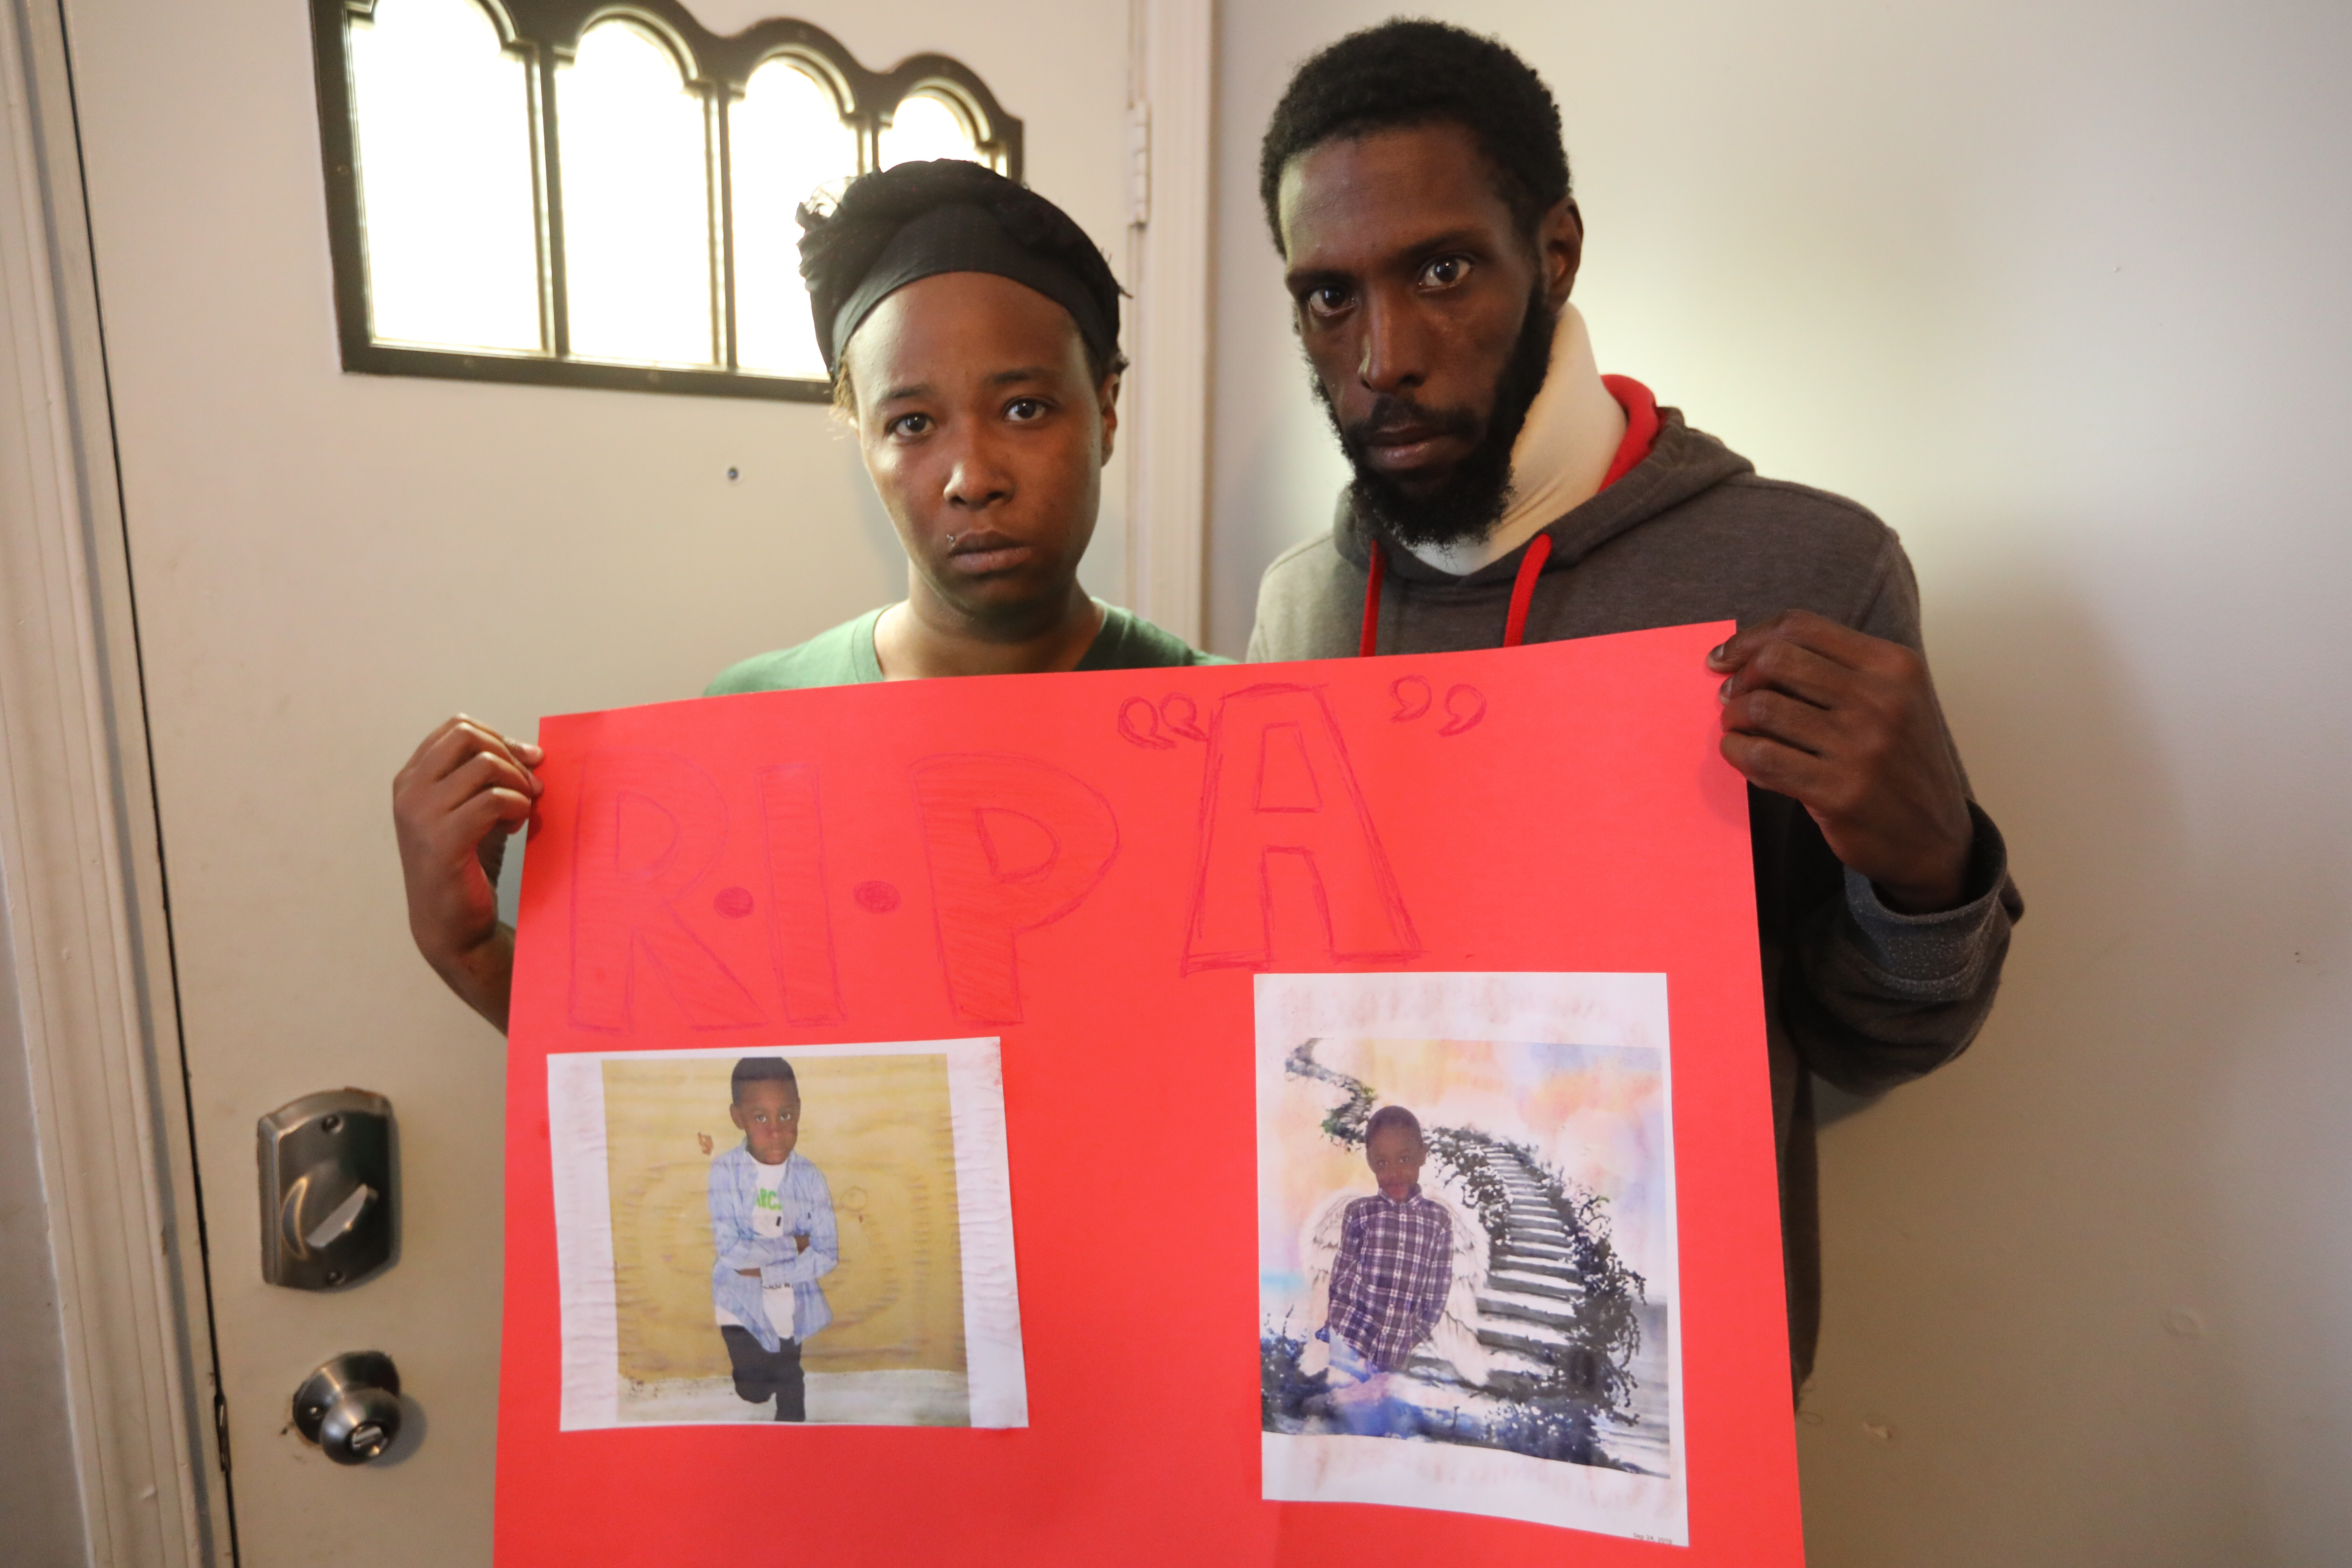 Mother and father Kimberly Dantzler, 29.And Troy Devlin, 36, hold a poster of their son Aden Devlin, 7, who lost his life yesterday after falling from a Septa Subway train while moving from one car to another while the the train was in motion, Monday September 24, 2018.